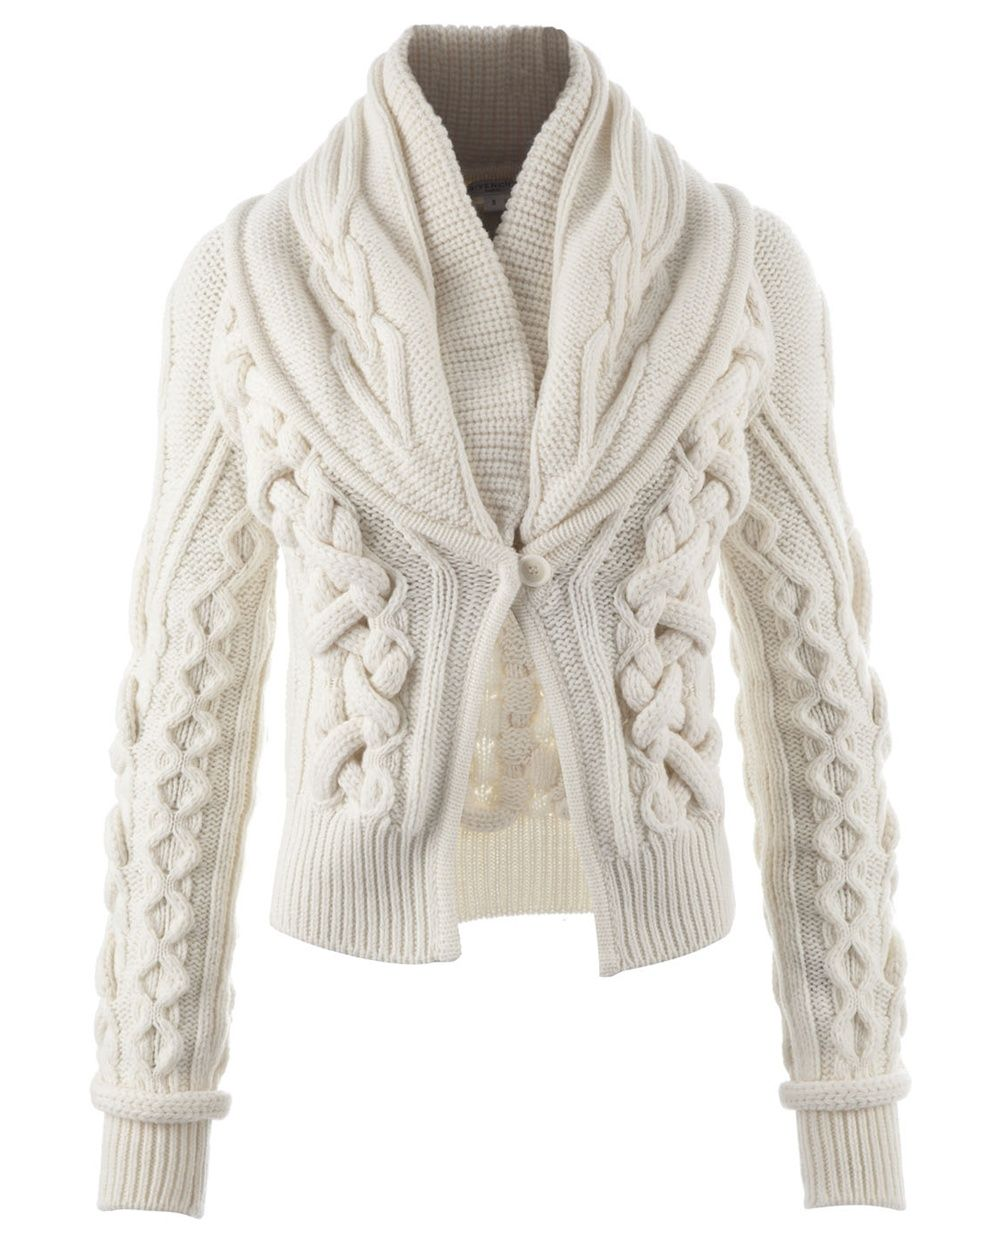 Givenchy Cable Knit | My Style | Pinterest | Cable knitting ...